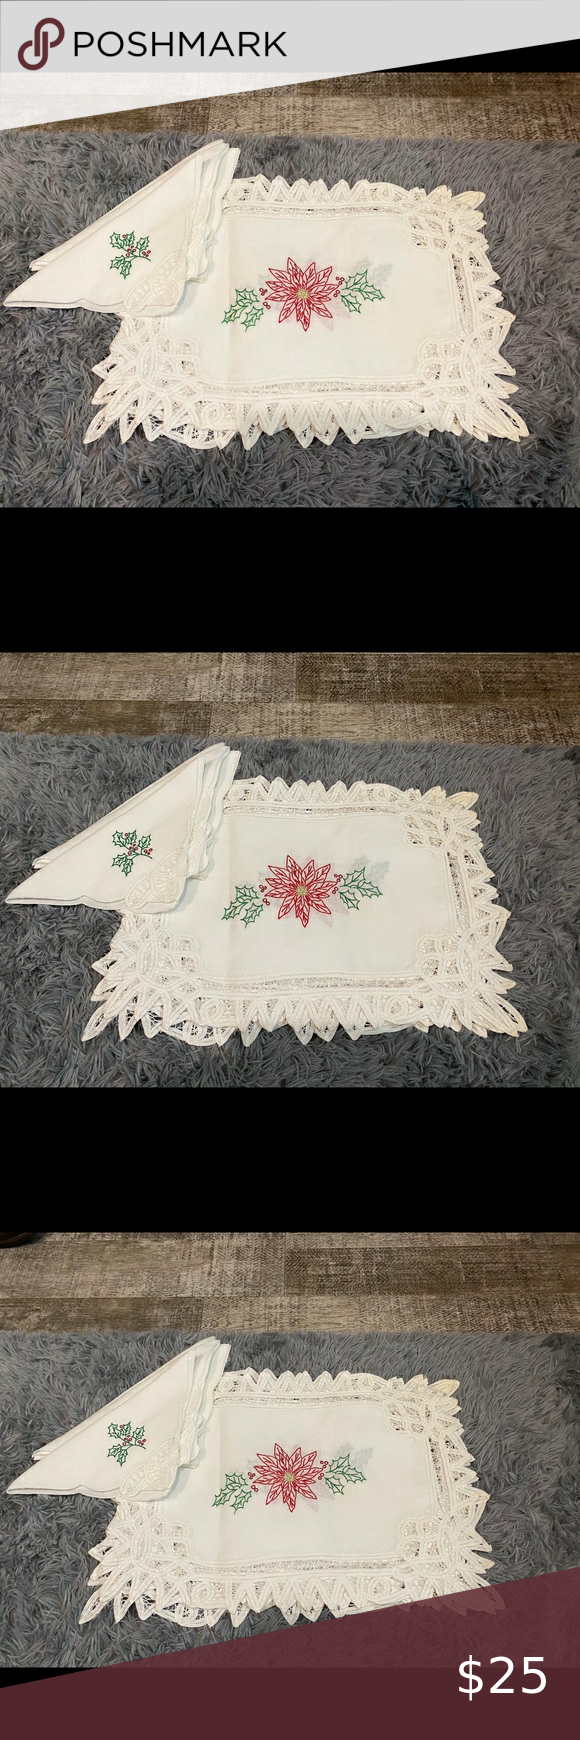 Christmas Placemats Holiday Paper Placemats Elegant Damask Paper Placemats Holiday Table Decor Holiday Table Decorations Holiday Paper Christmas Placemats